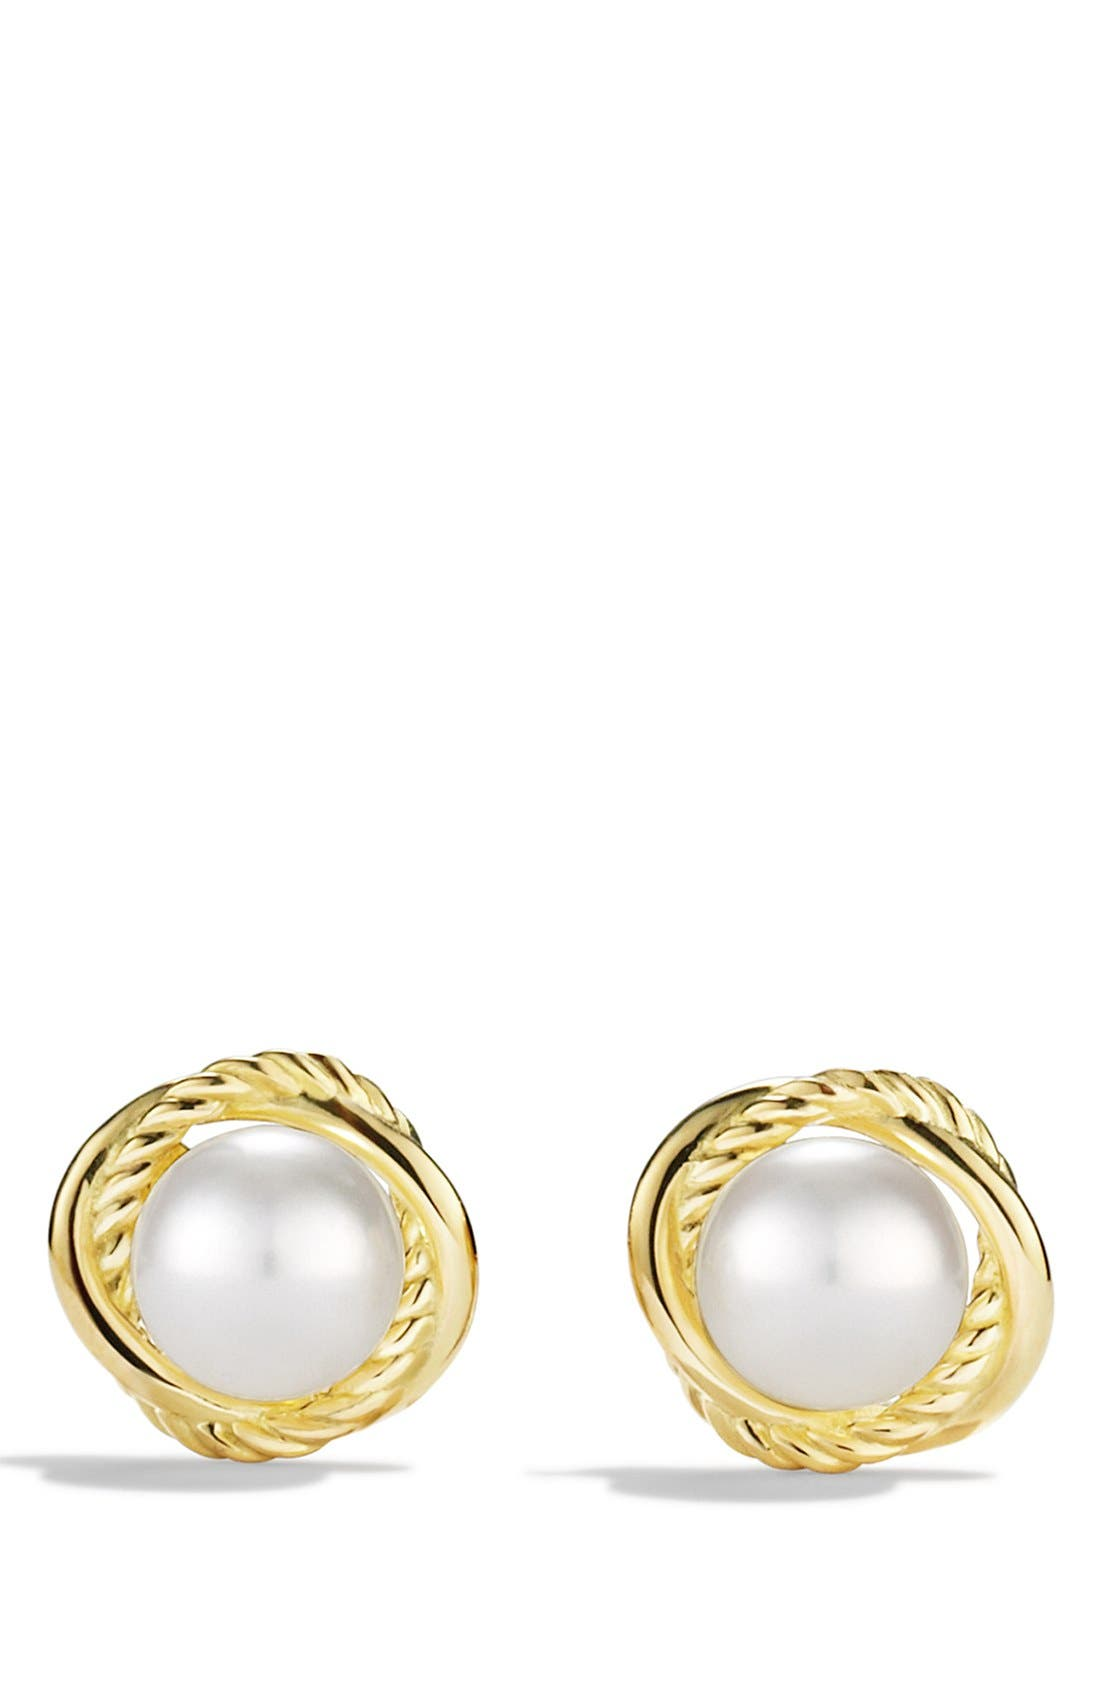 Alternate Image 2  - David Yurman 'Infinity' Earrings with Pearls in Gold